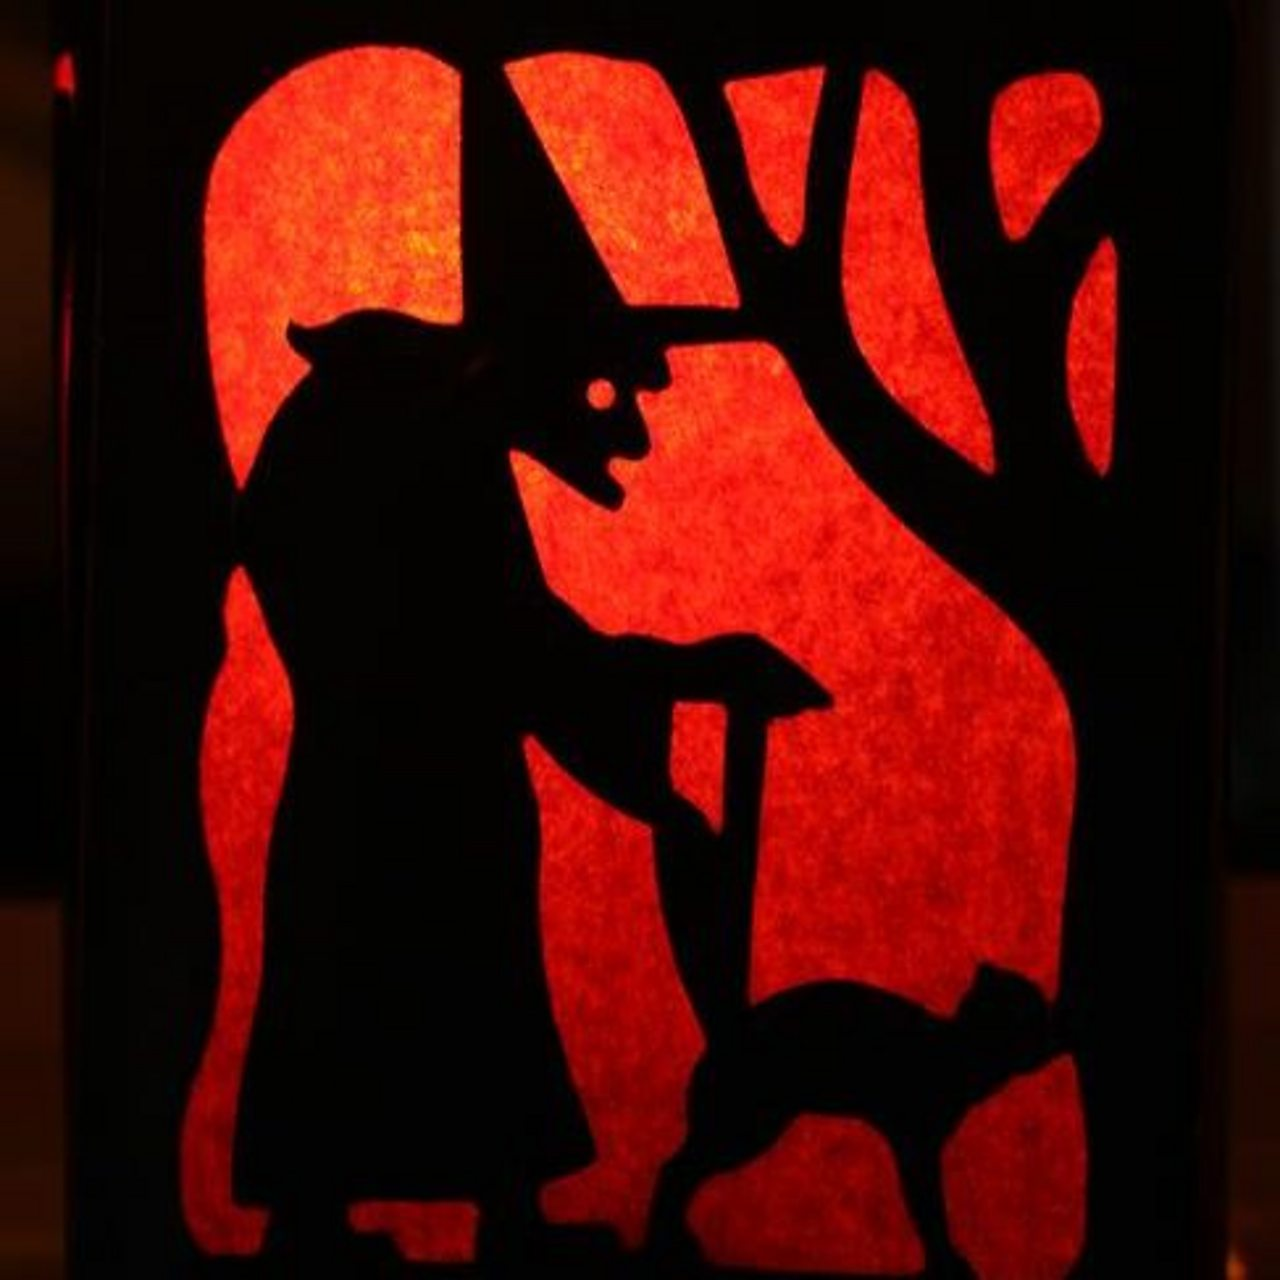 A silhouette of a witch with a pointy hat with a cat by her feet